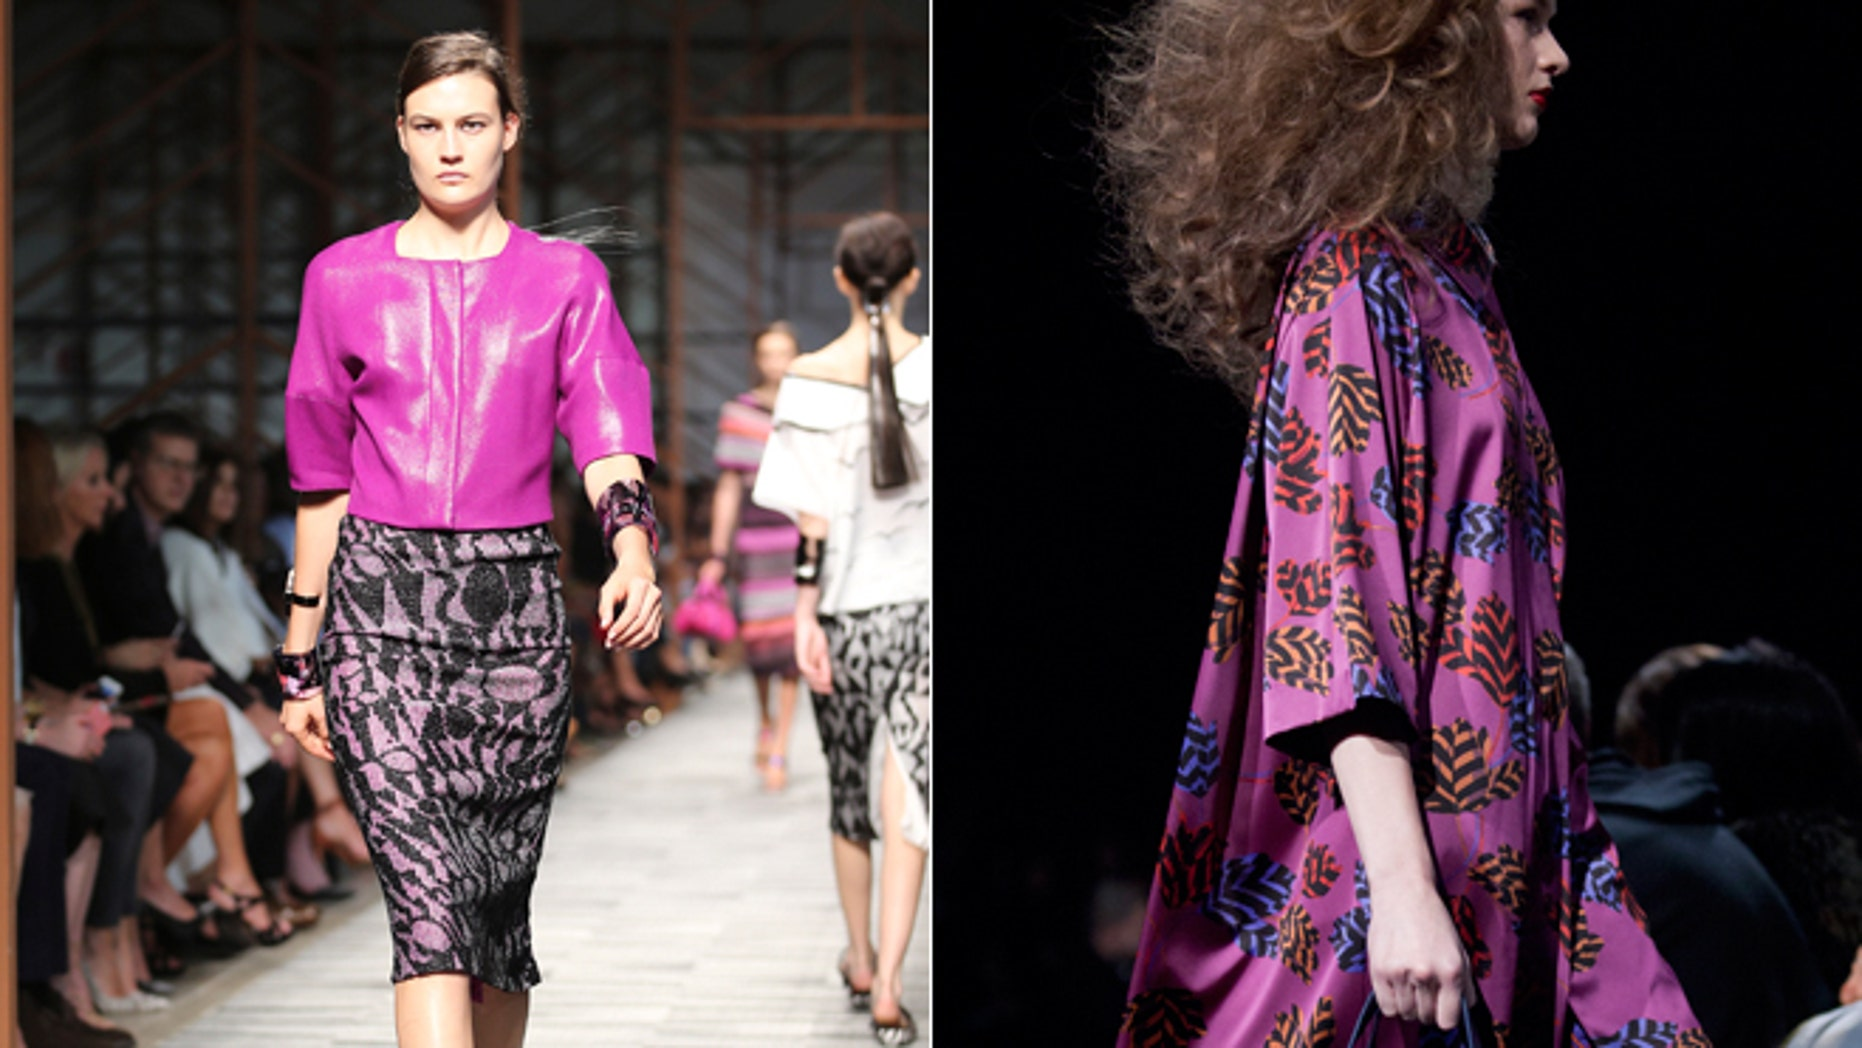 Orchid, a version of the purple hue, is Pantone Inc.'s color of the year for 2014.